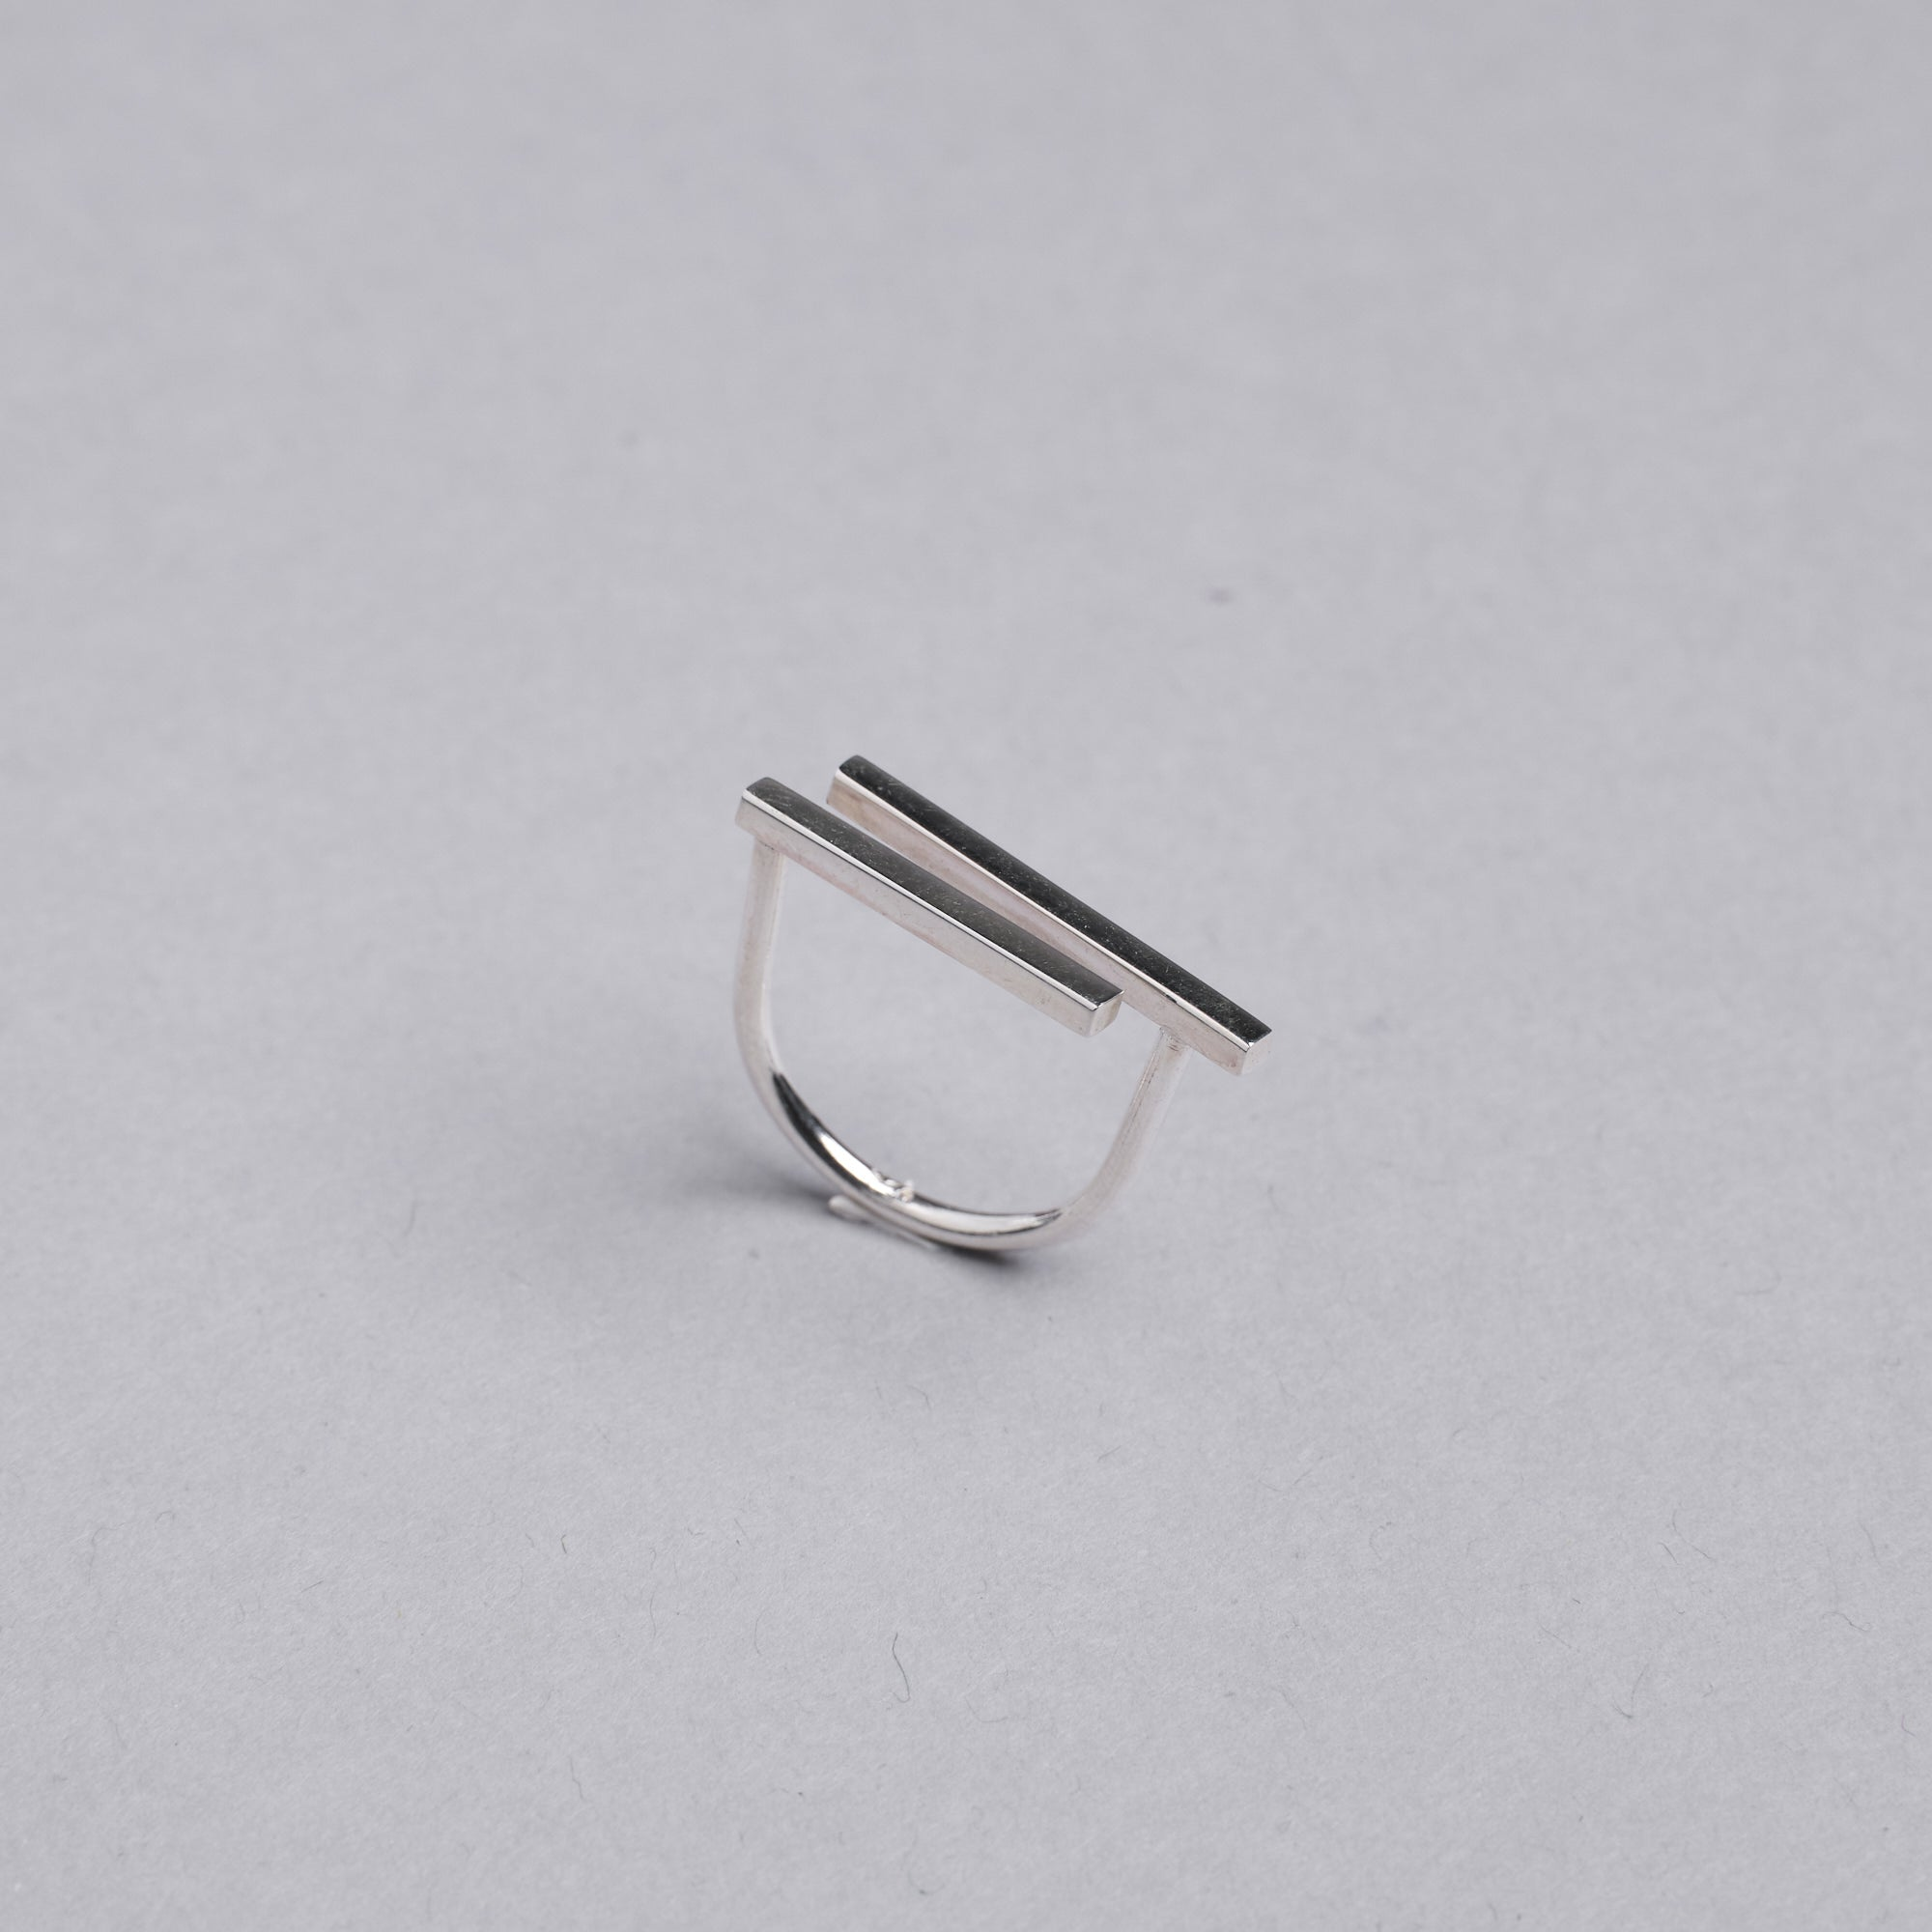 Silver Geometric Horizontal Bar Ring by Otis Jaxon